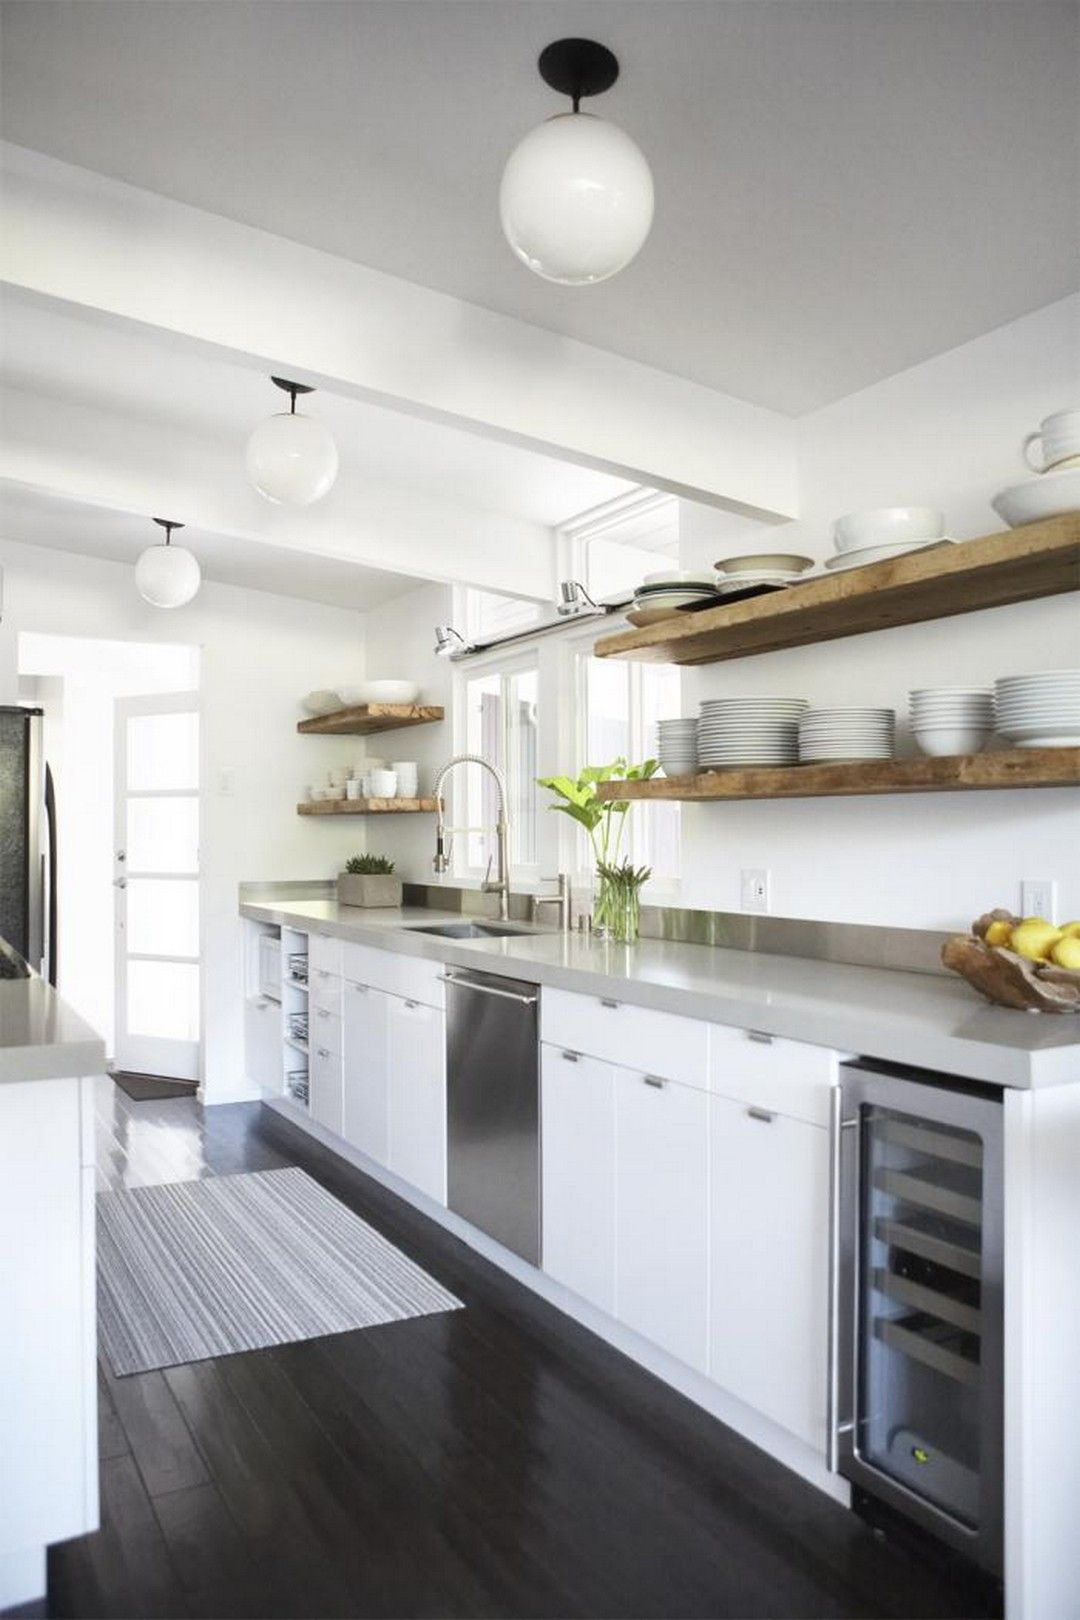 Pin by stephanie wimber ruppe on kitchens pinterest kitchen